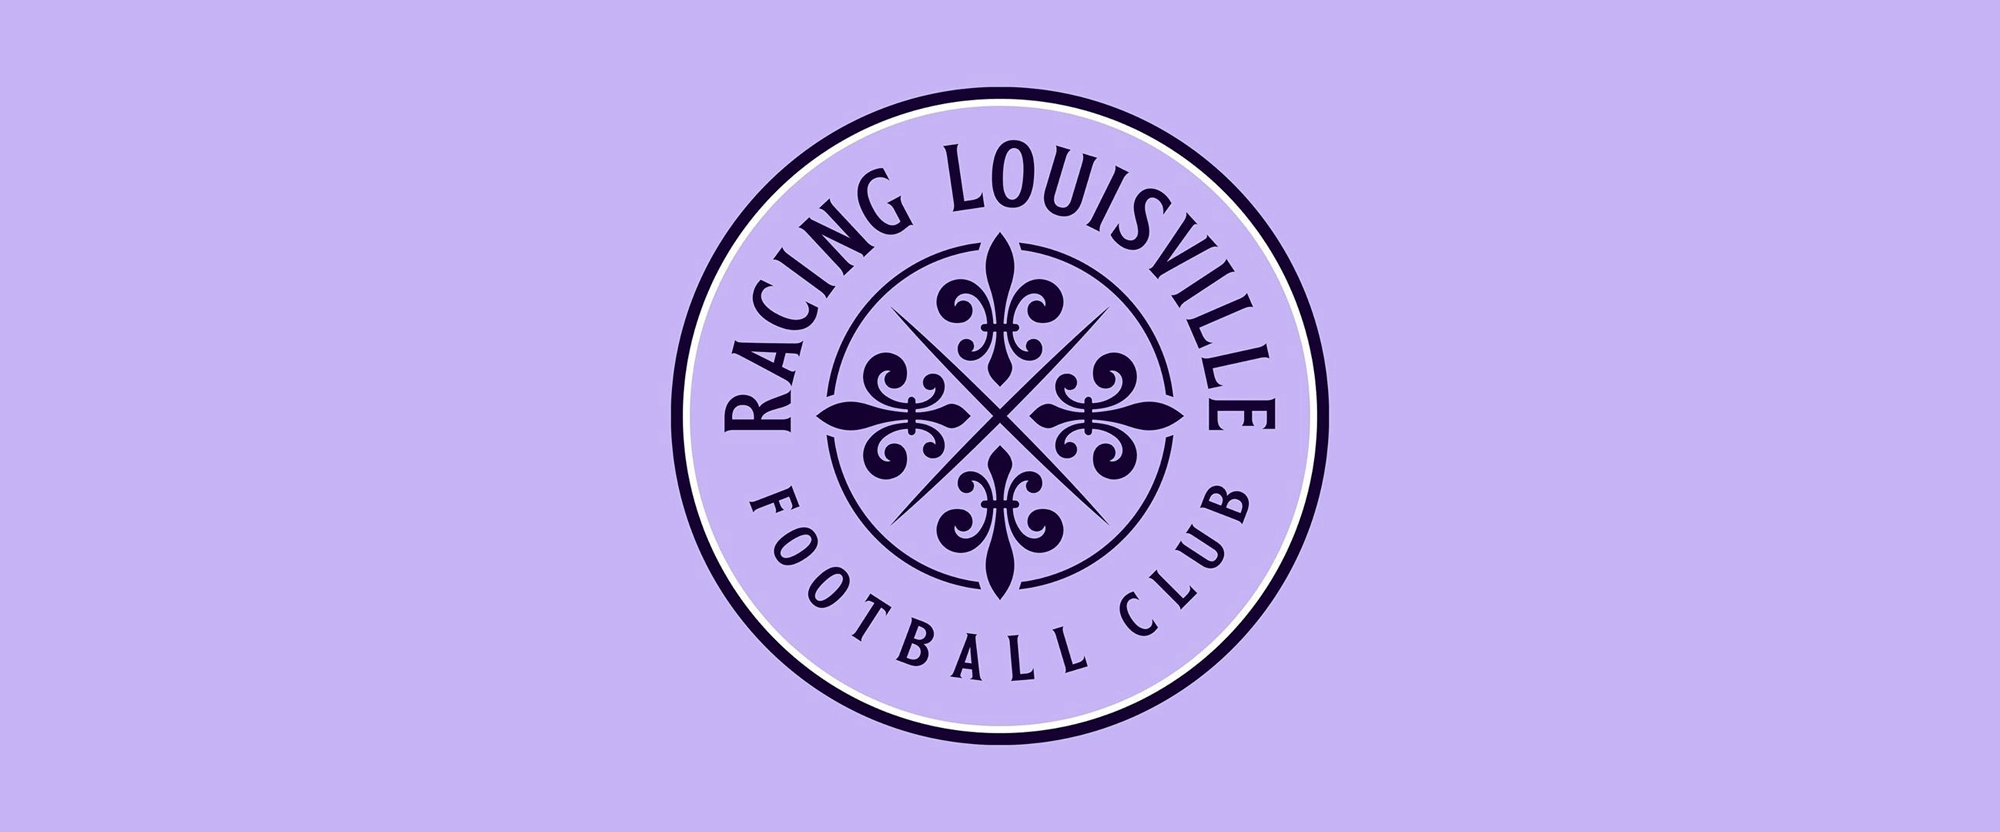 New Logo for Racing Louisville FC by Matthew Wolff Design